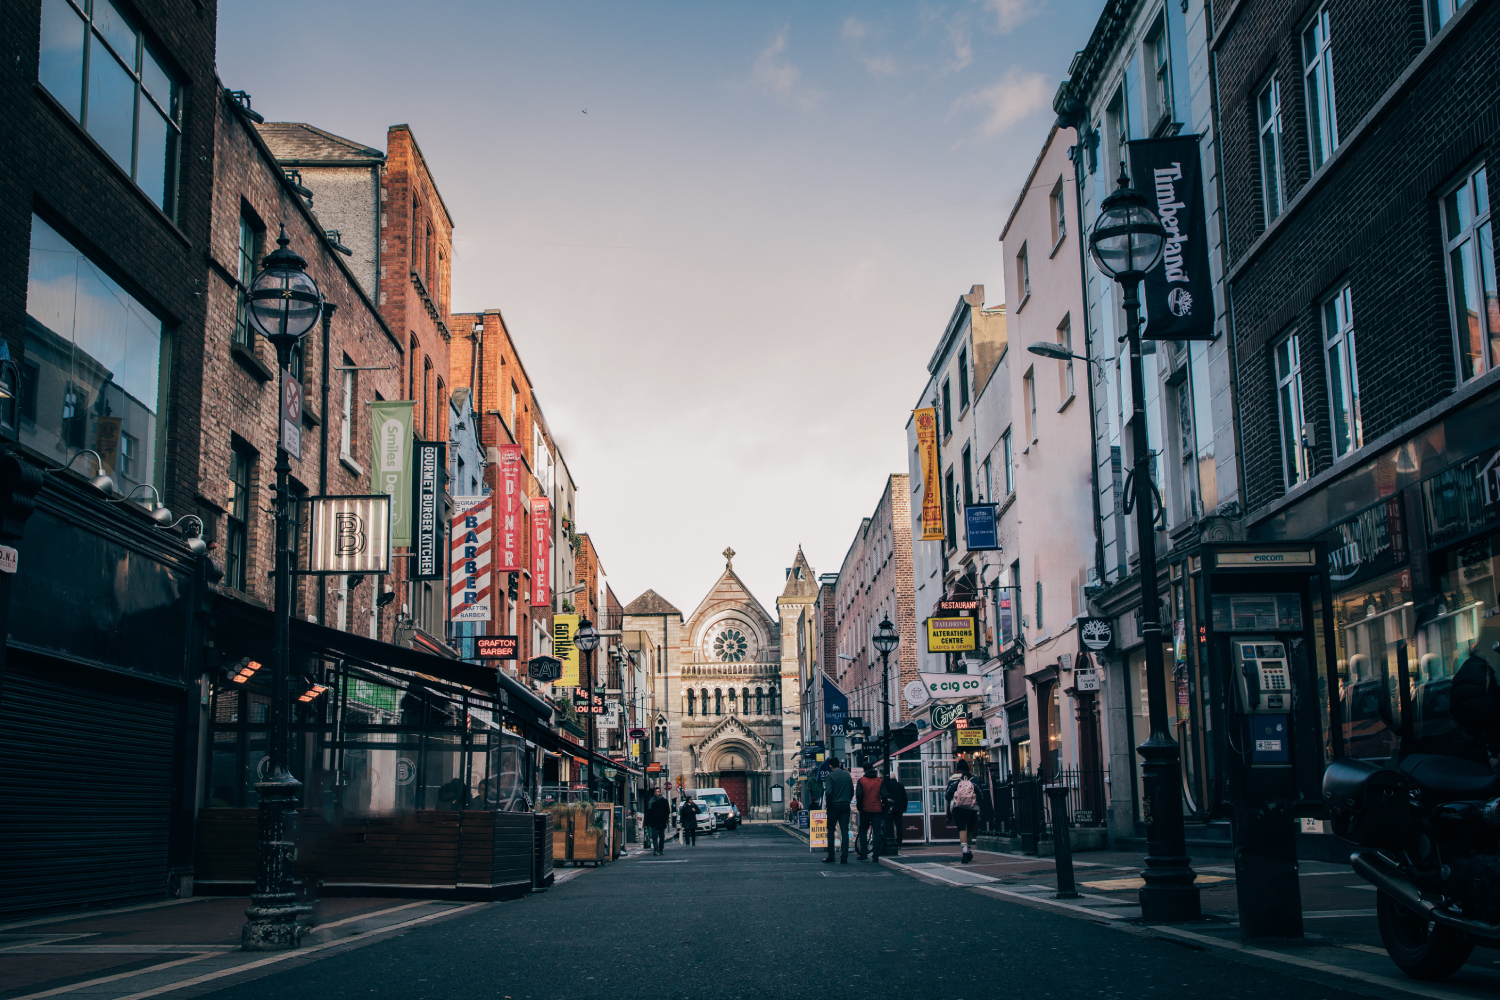 Visit Anne Street during your 3 days in Dublin